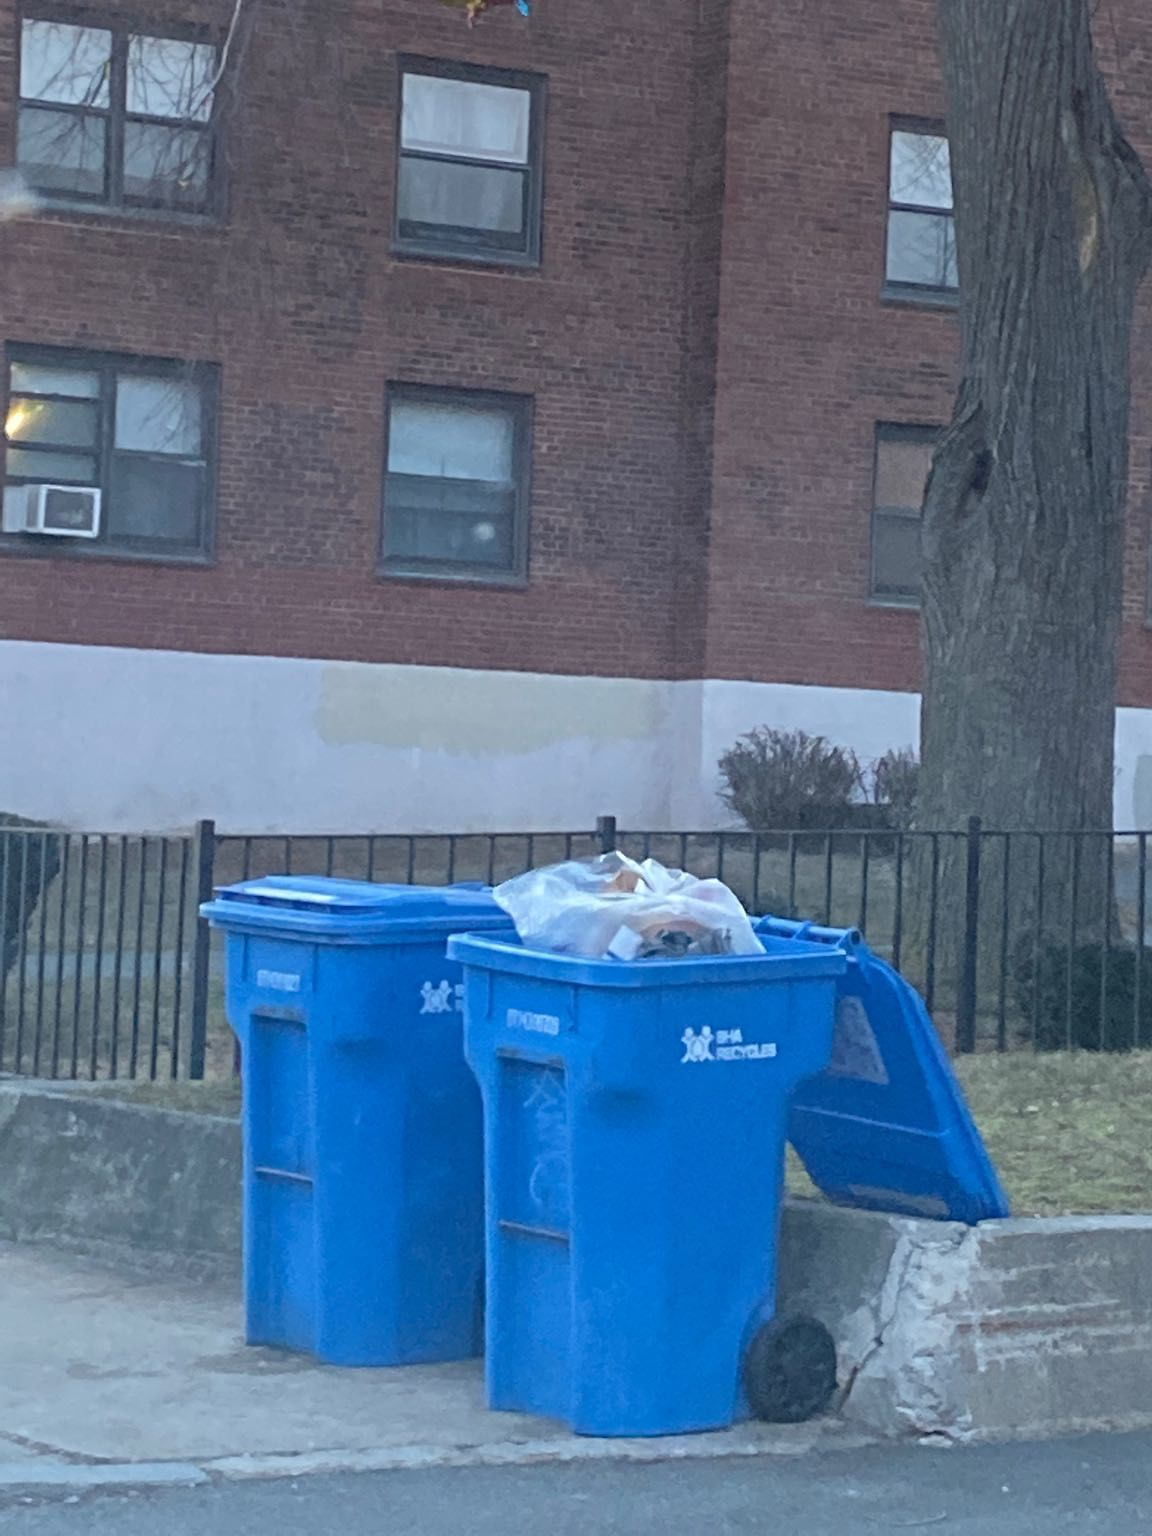 Residential Trash out Illegally